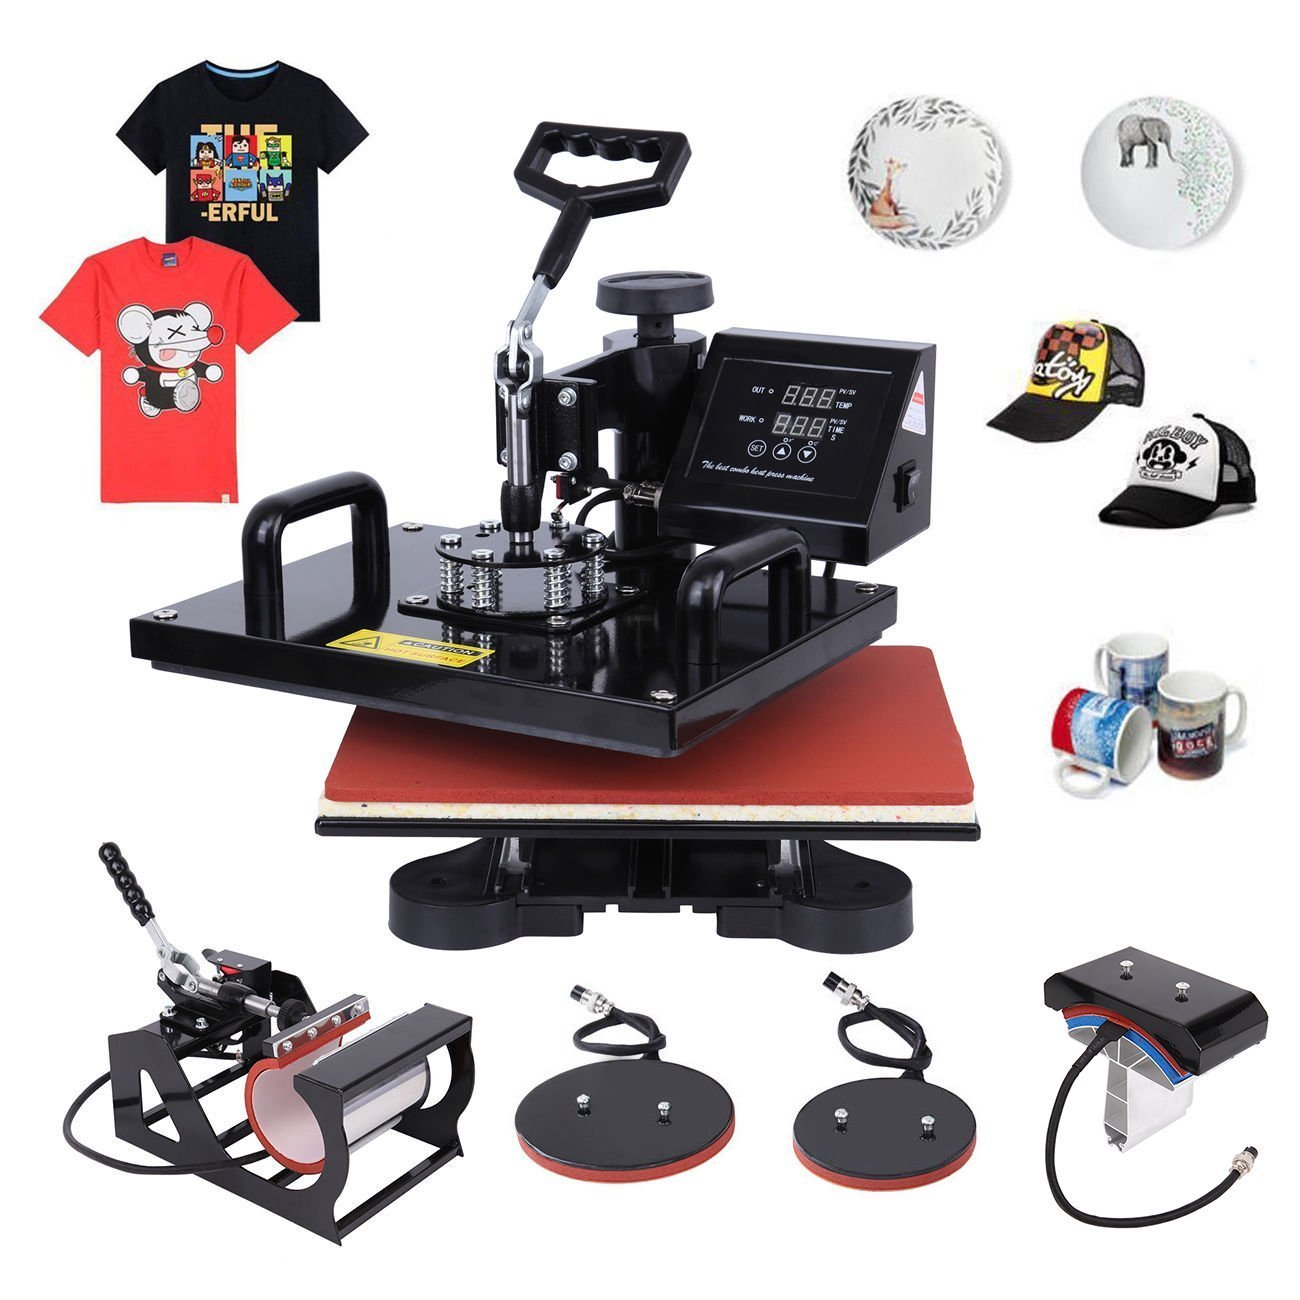 Ambienceo Digital Heat Press Machine Transfer Printer Sublimation T-Shirt Mug Plate Hat 12'' X 15'' (5 IN 1) by Ambienceo